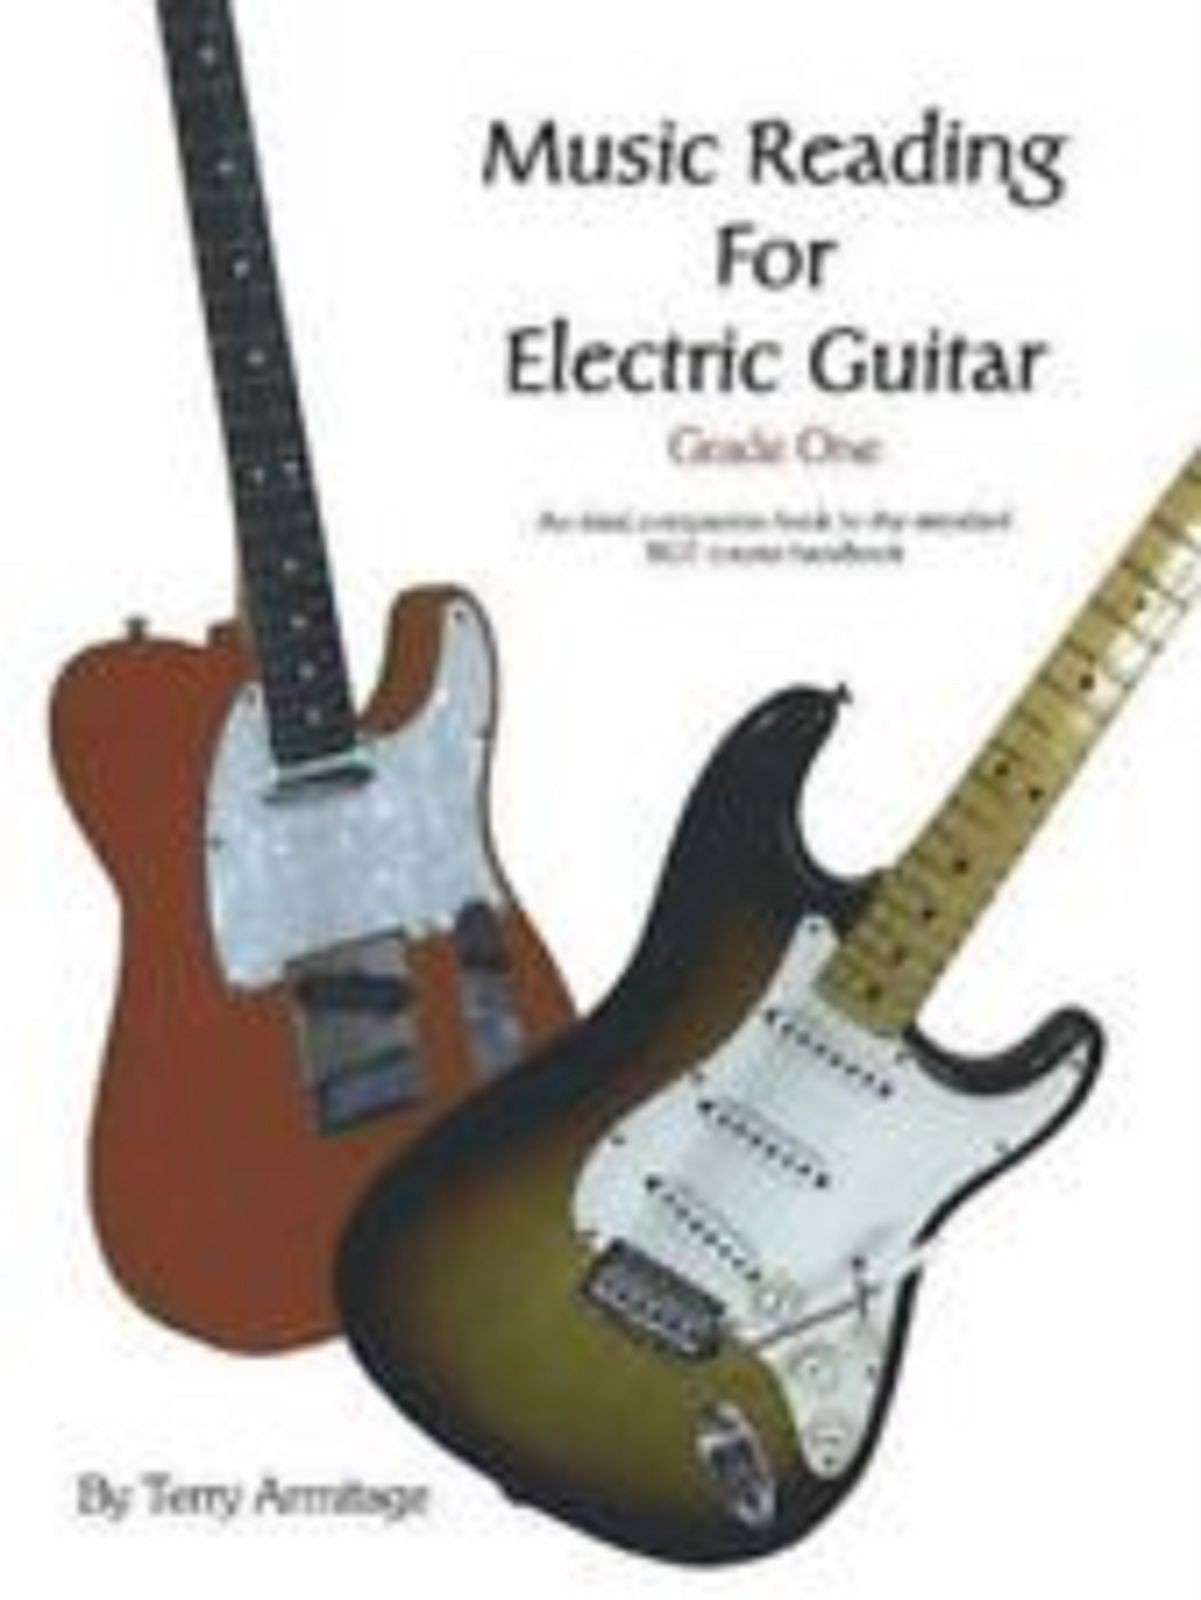 Music Reading For Electric Guitar Grade One By Terry Armitage Book S104